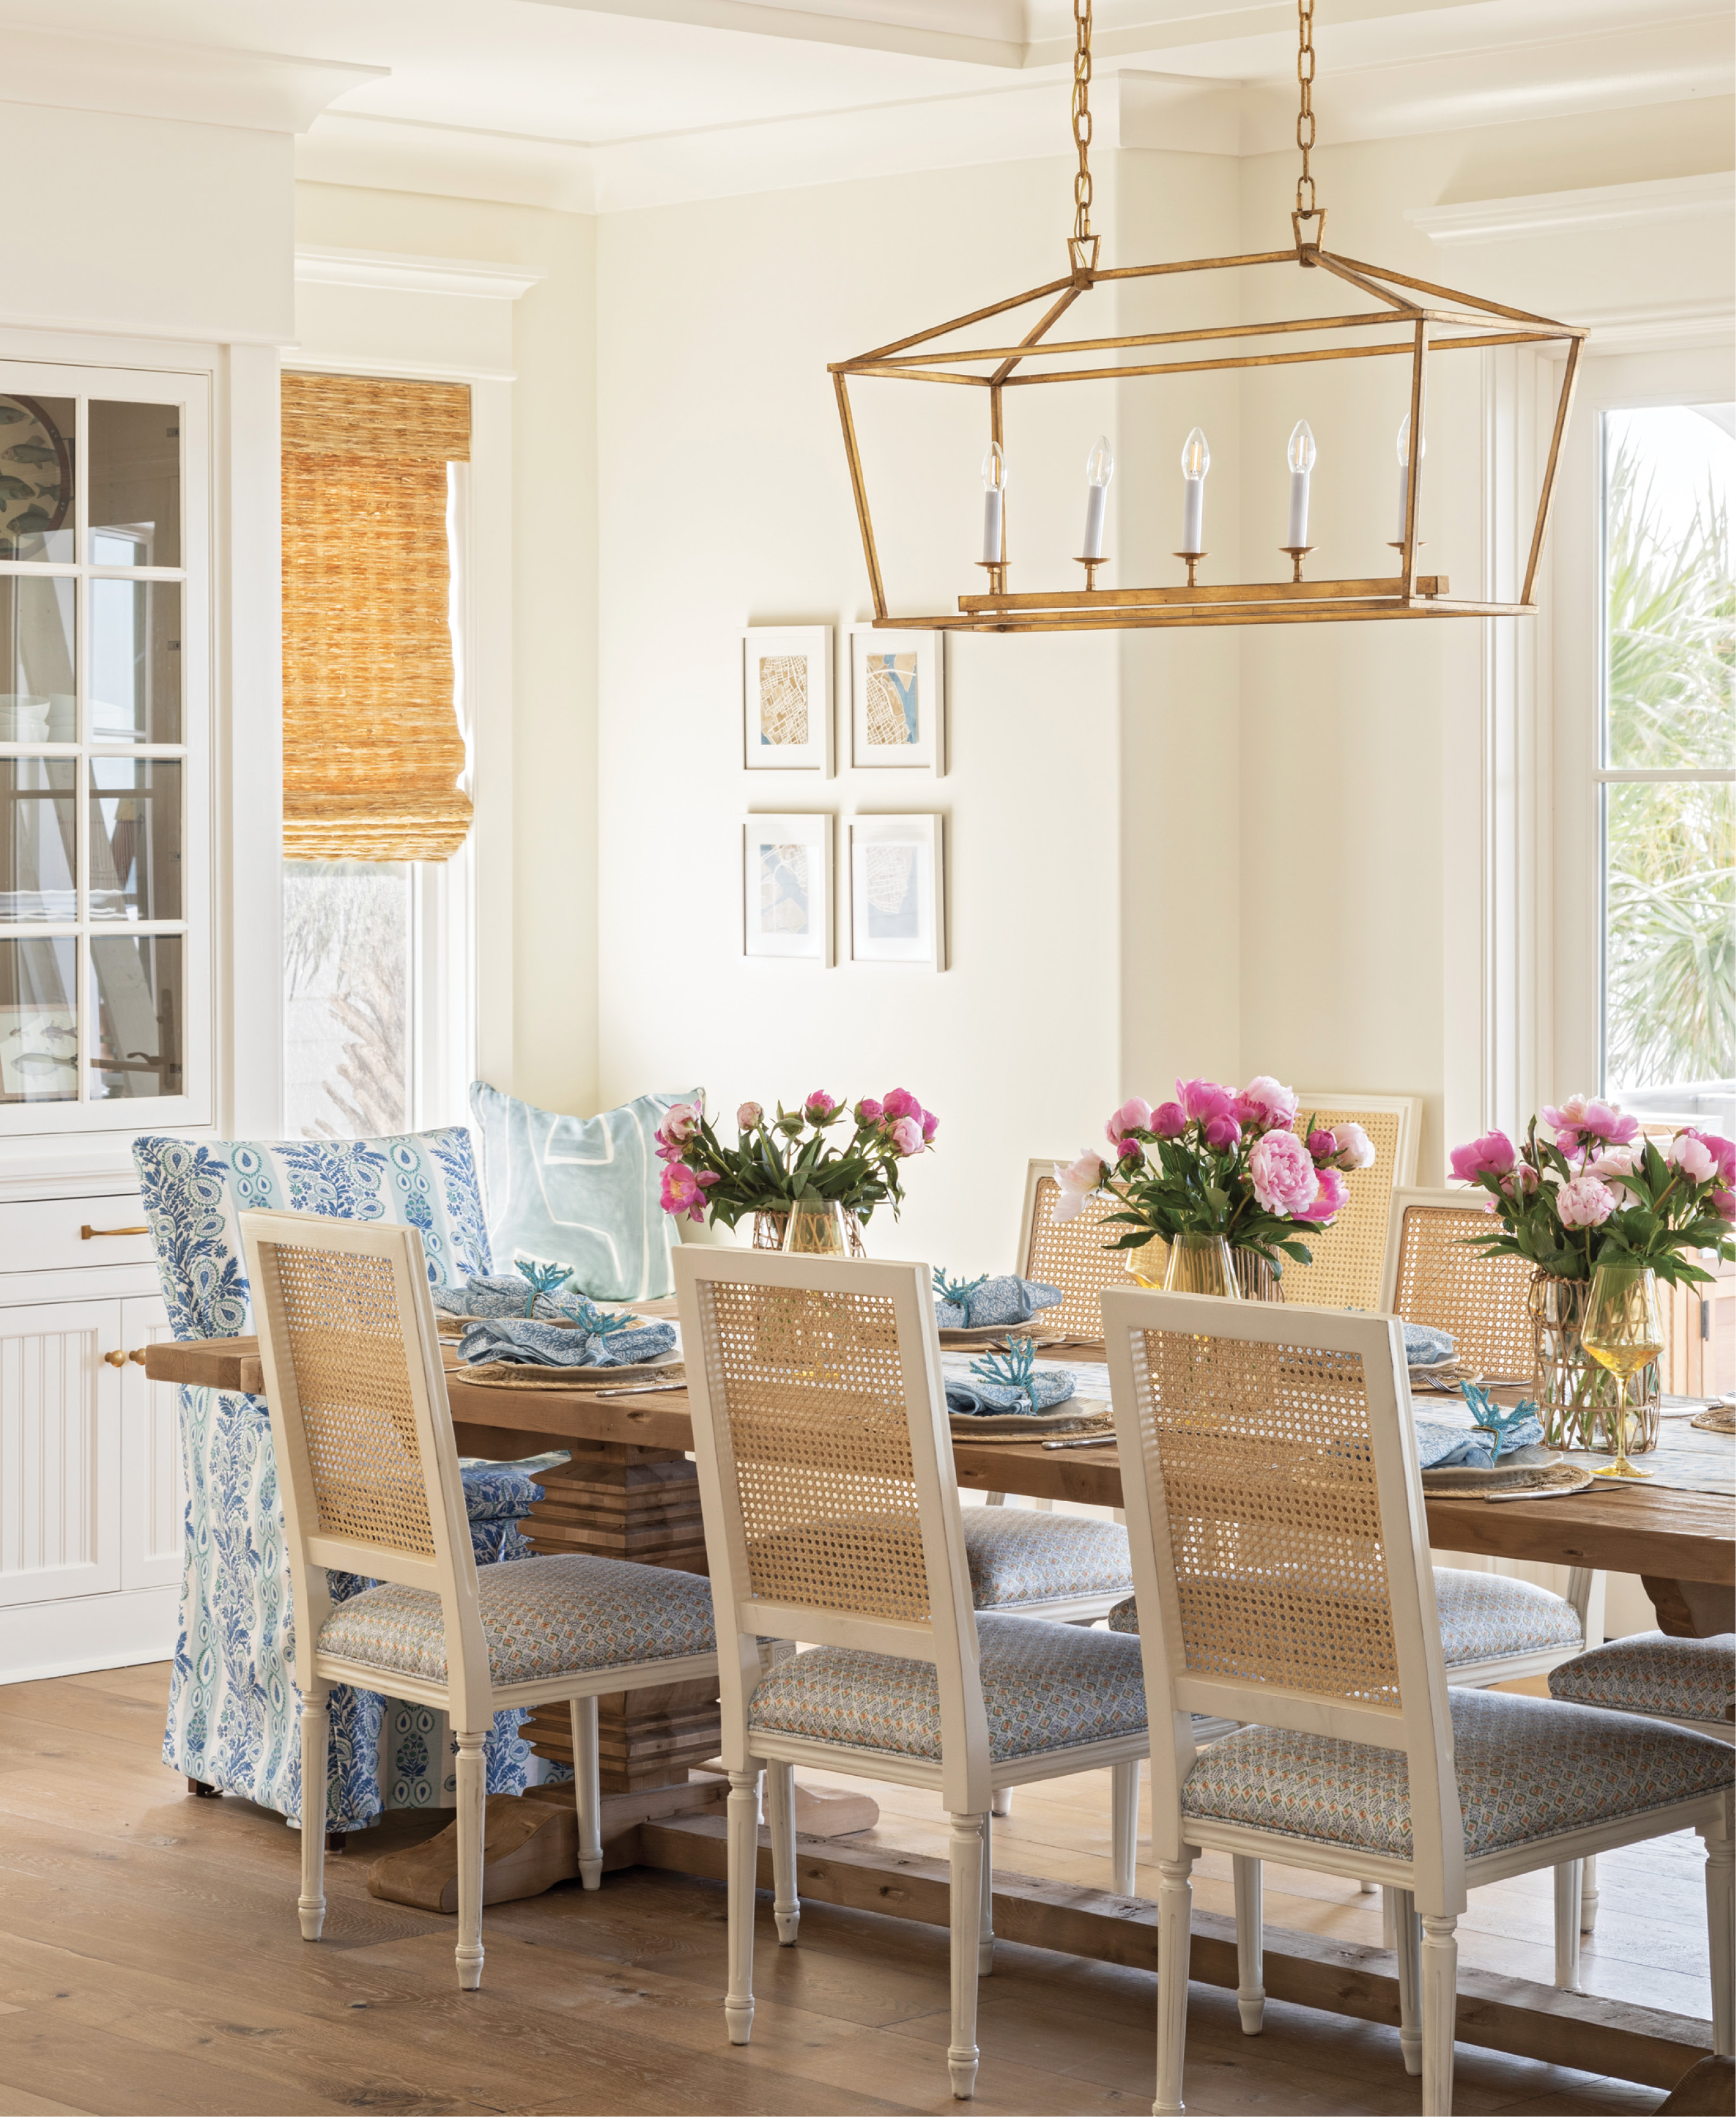 GOOD VIBES: In the dining area, windows were replaced with French doors, flooding the space with natural light and making a more direct thoroughfare to the outdoor kitchen. A fun suite of fabrics—by Rebecca Atwood (cane-back chair seats), Charlotte Gaisford (slipcovered host chairs), and Kelly Wearstler (window seat pillow)—energize the space, which centers around a sweeping Restoration Hardware trestle table.